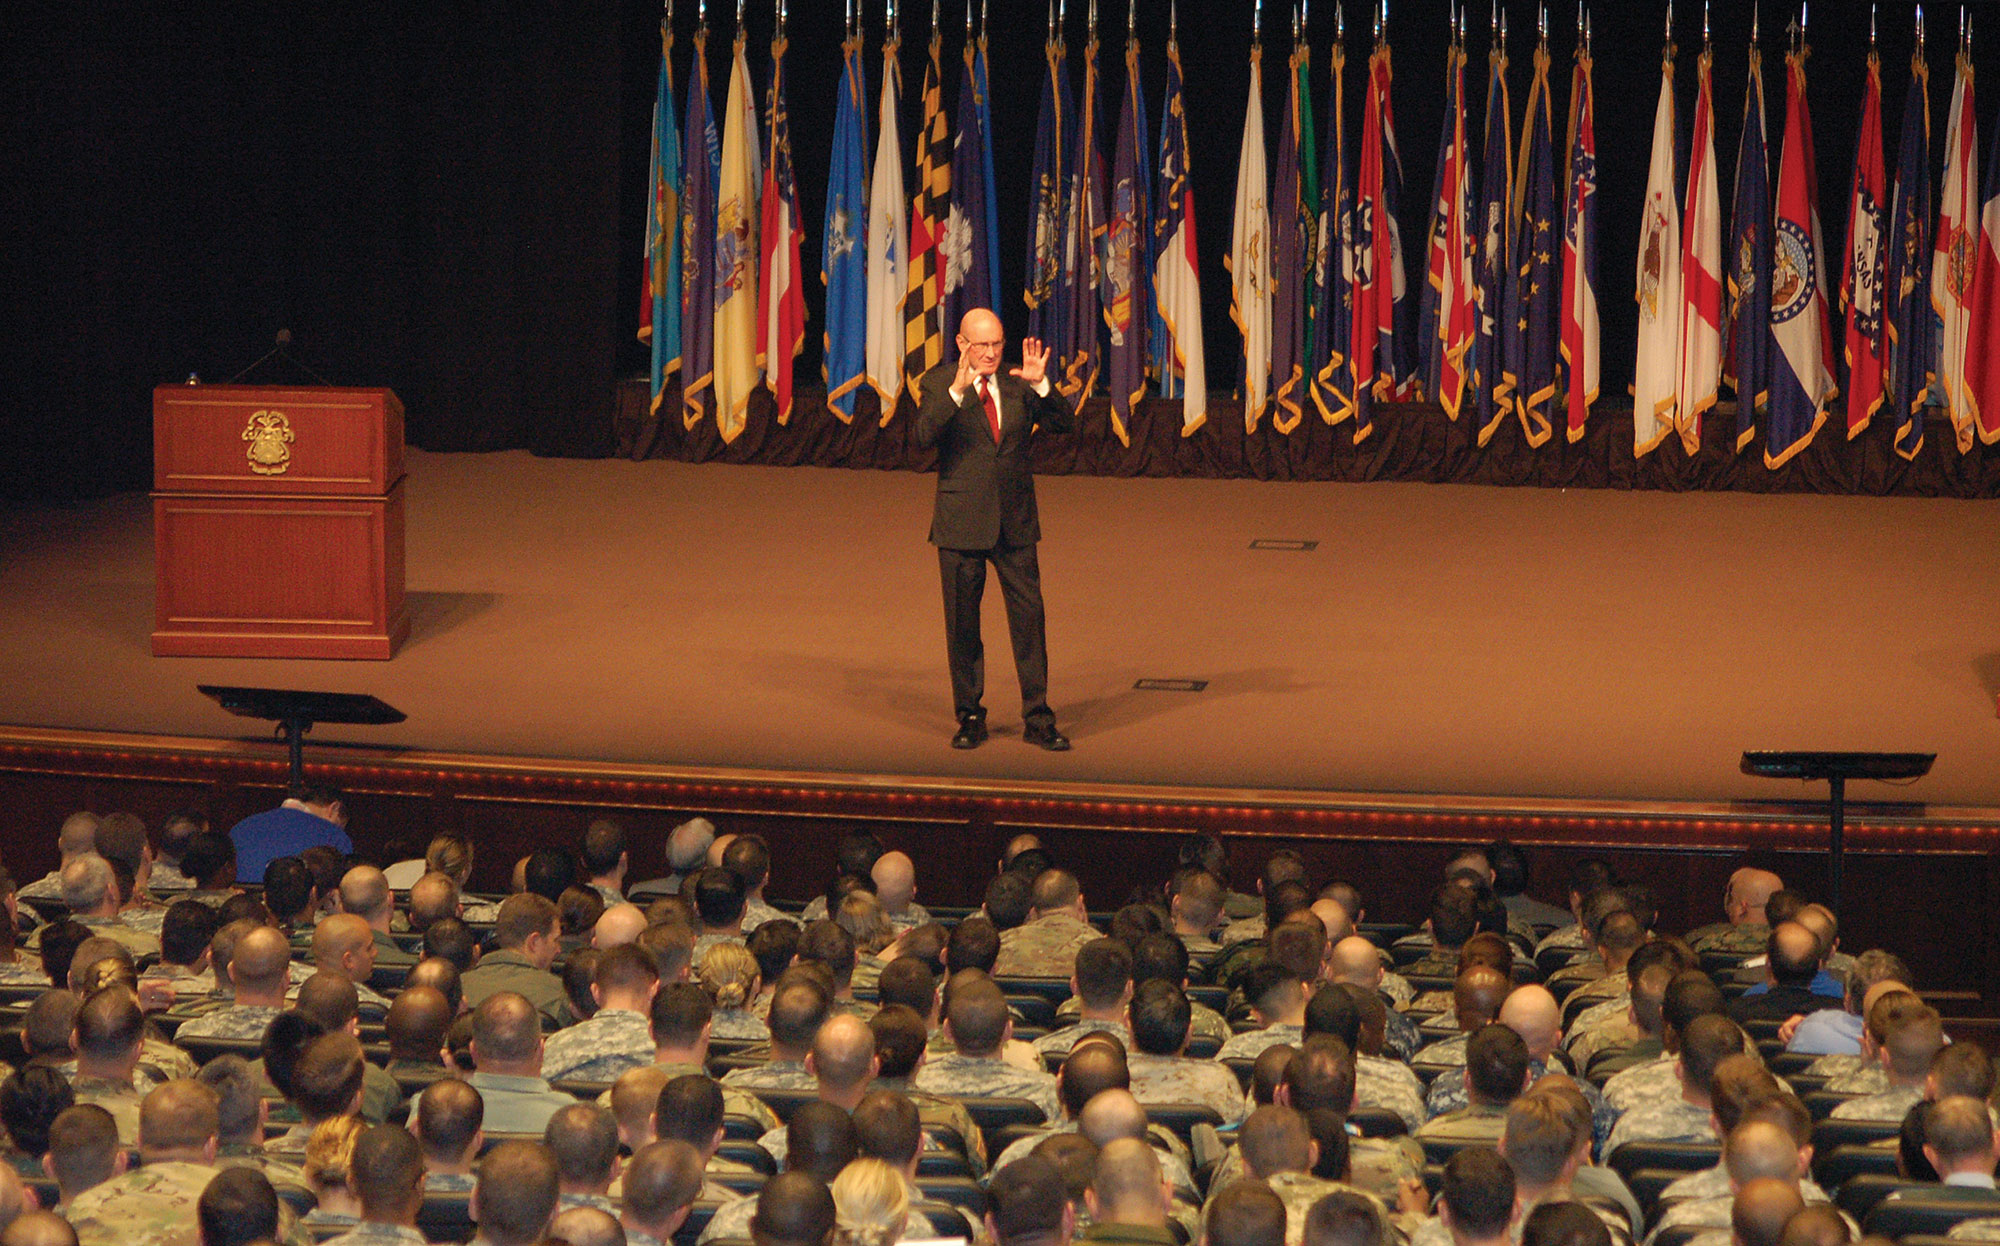 """Hyrum Smith presents his """"3 Gaps"""" lecture to CGSC students Jan. 26, 2016, in Eisenhower Hall of the Lewis and Clark Center on Fort Leavenworth. This would be Smith's last presentation at CGSC. (photo by Mark H. Wiggins)"""